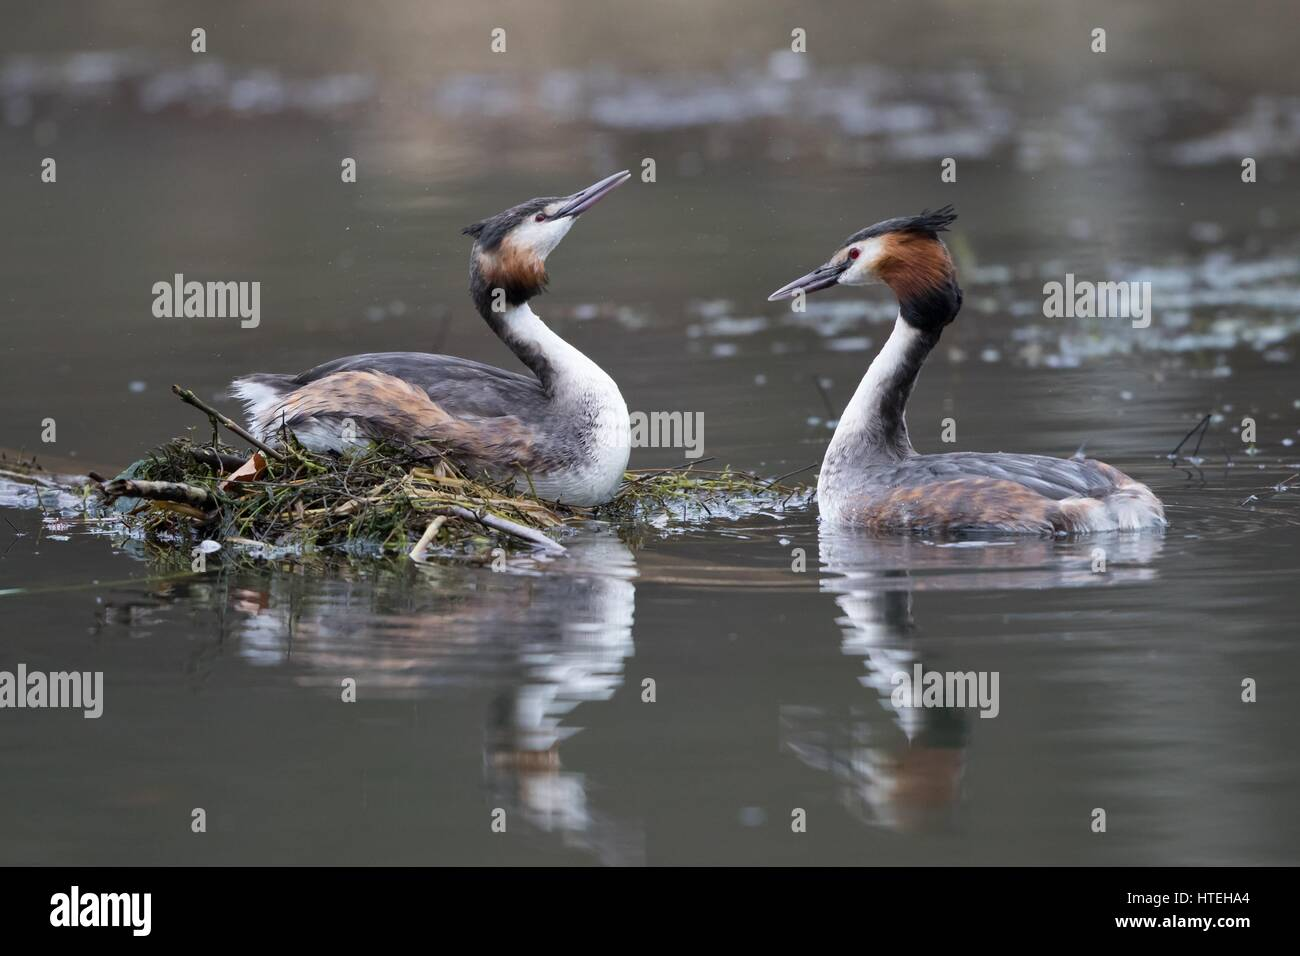 Courting Great Crested Grebes (Podiceps cristatus) at nest, Hesse, Germany - Stock Image